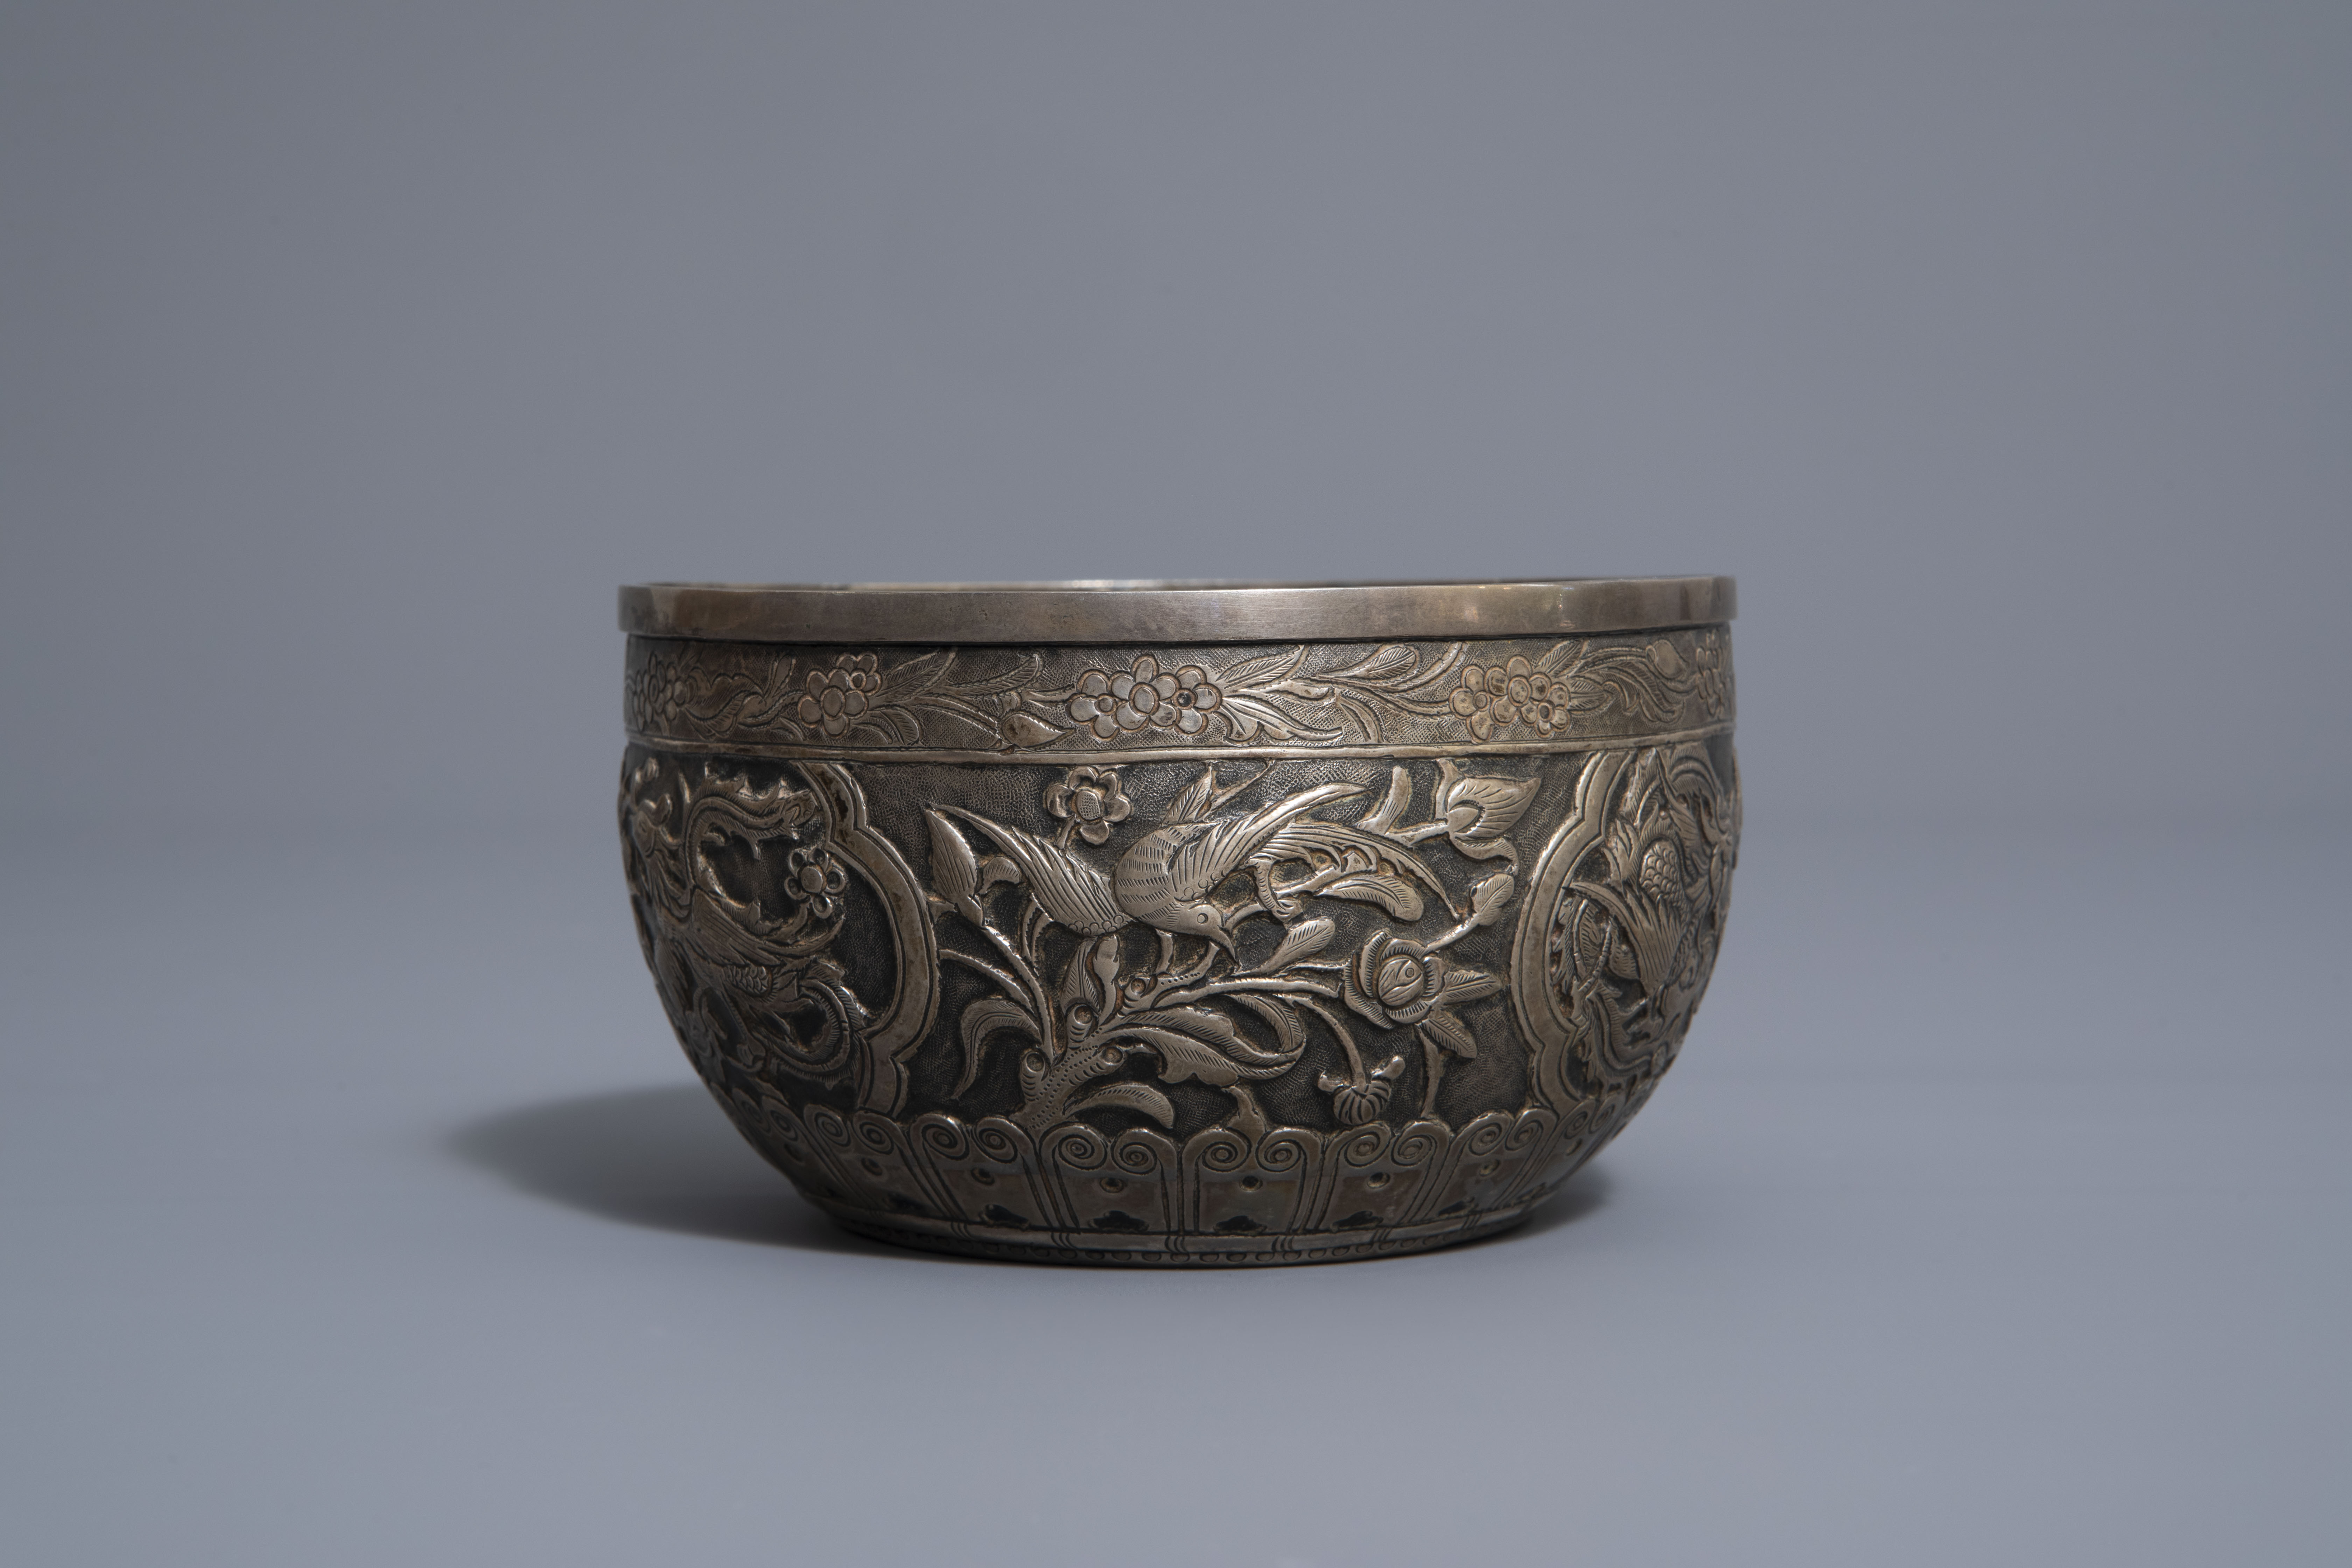 Five Chinese famille rose and silver cups and saucers and a bowl, 19th/20th C. - Image 13 of 17